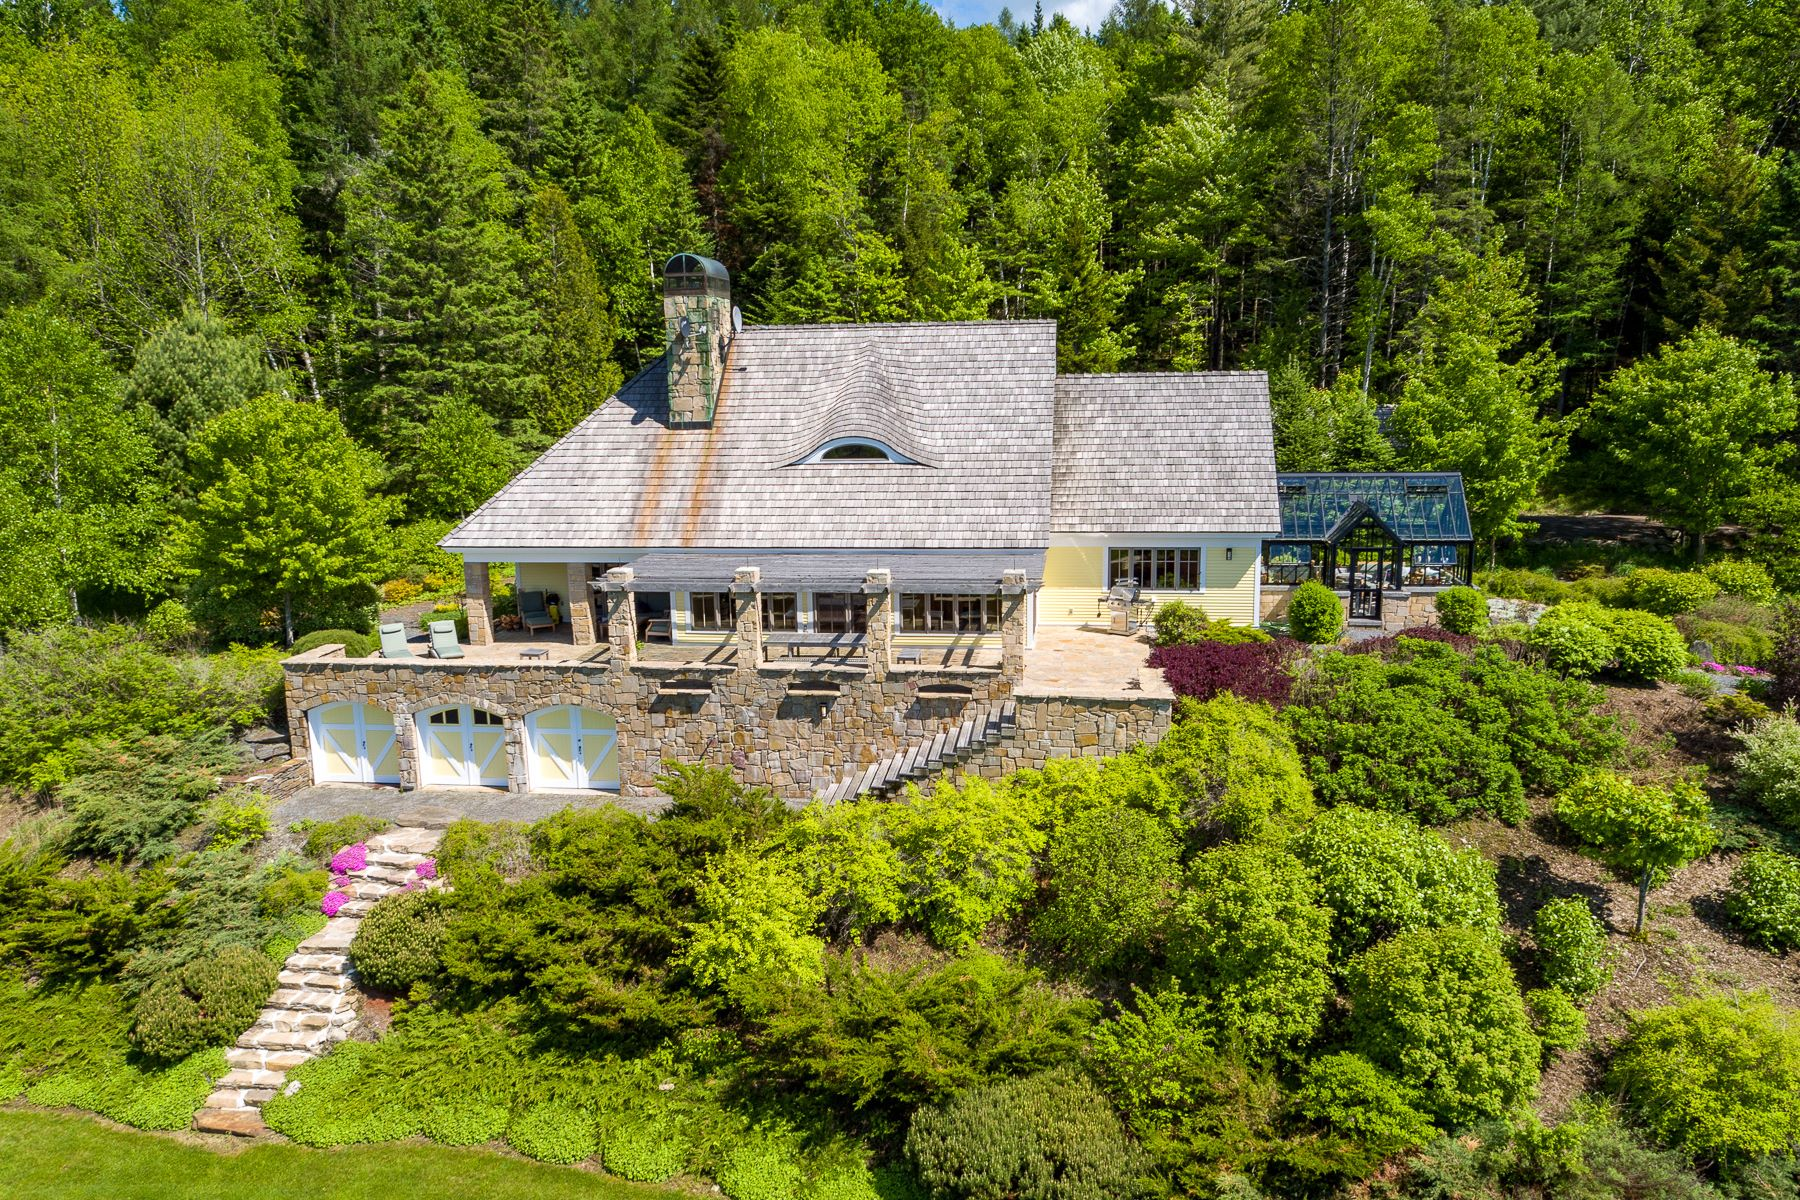 Single Family Home for Sale at Ash Pond Estate 281 Barnes Brook Rd, Kirby, Vermont, 05851 United States